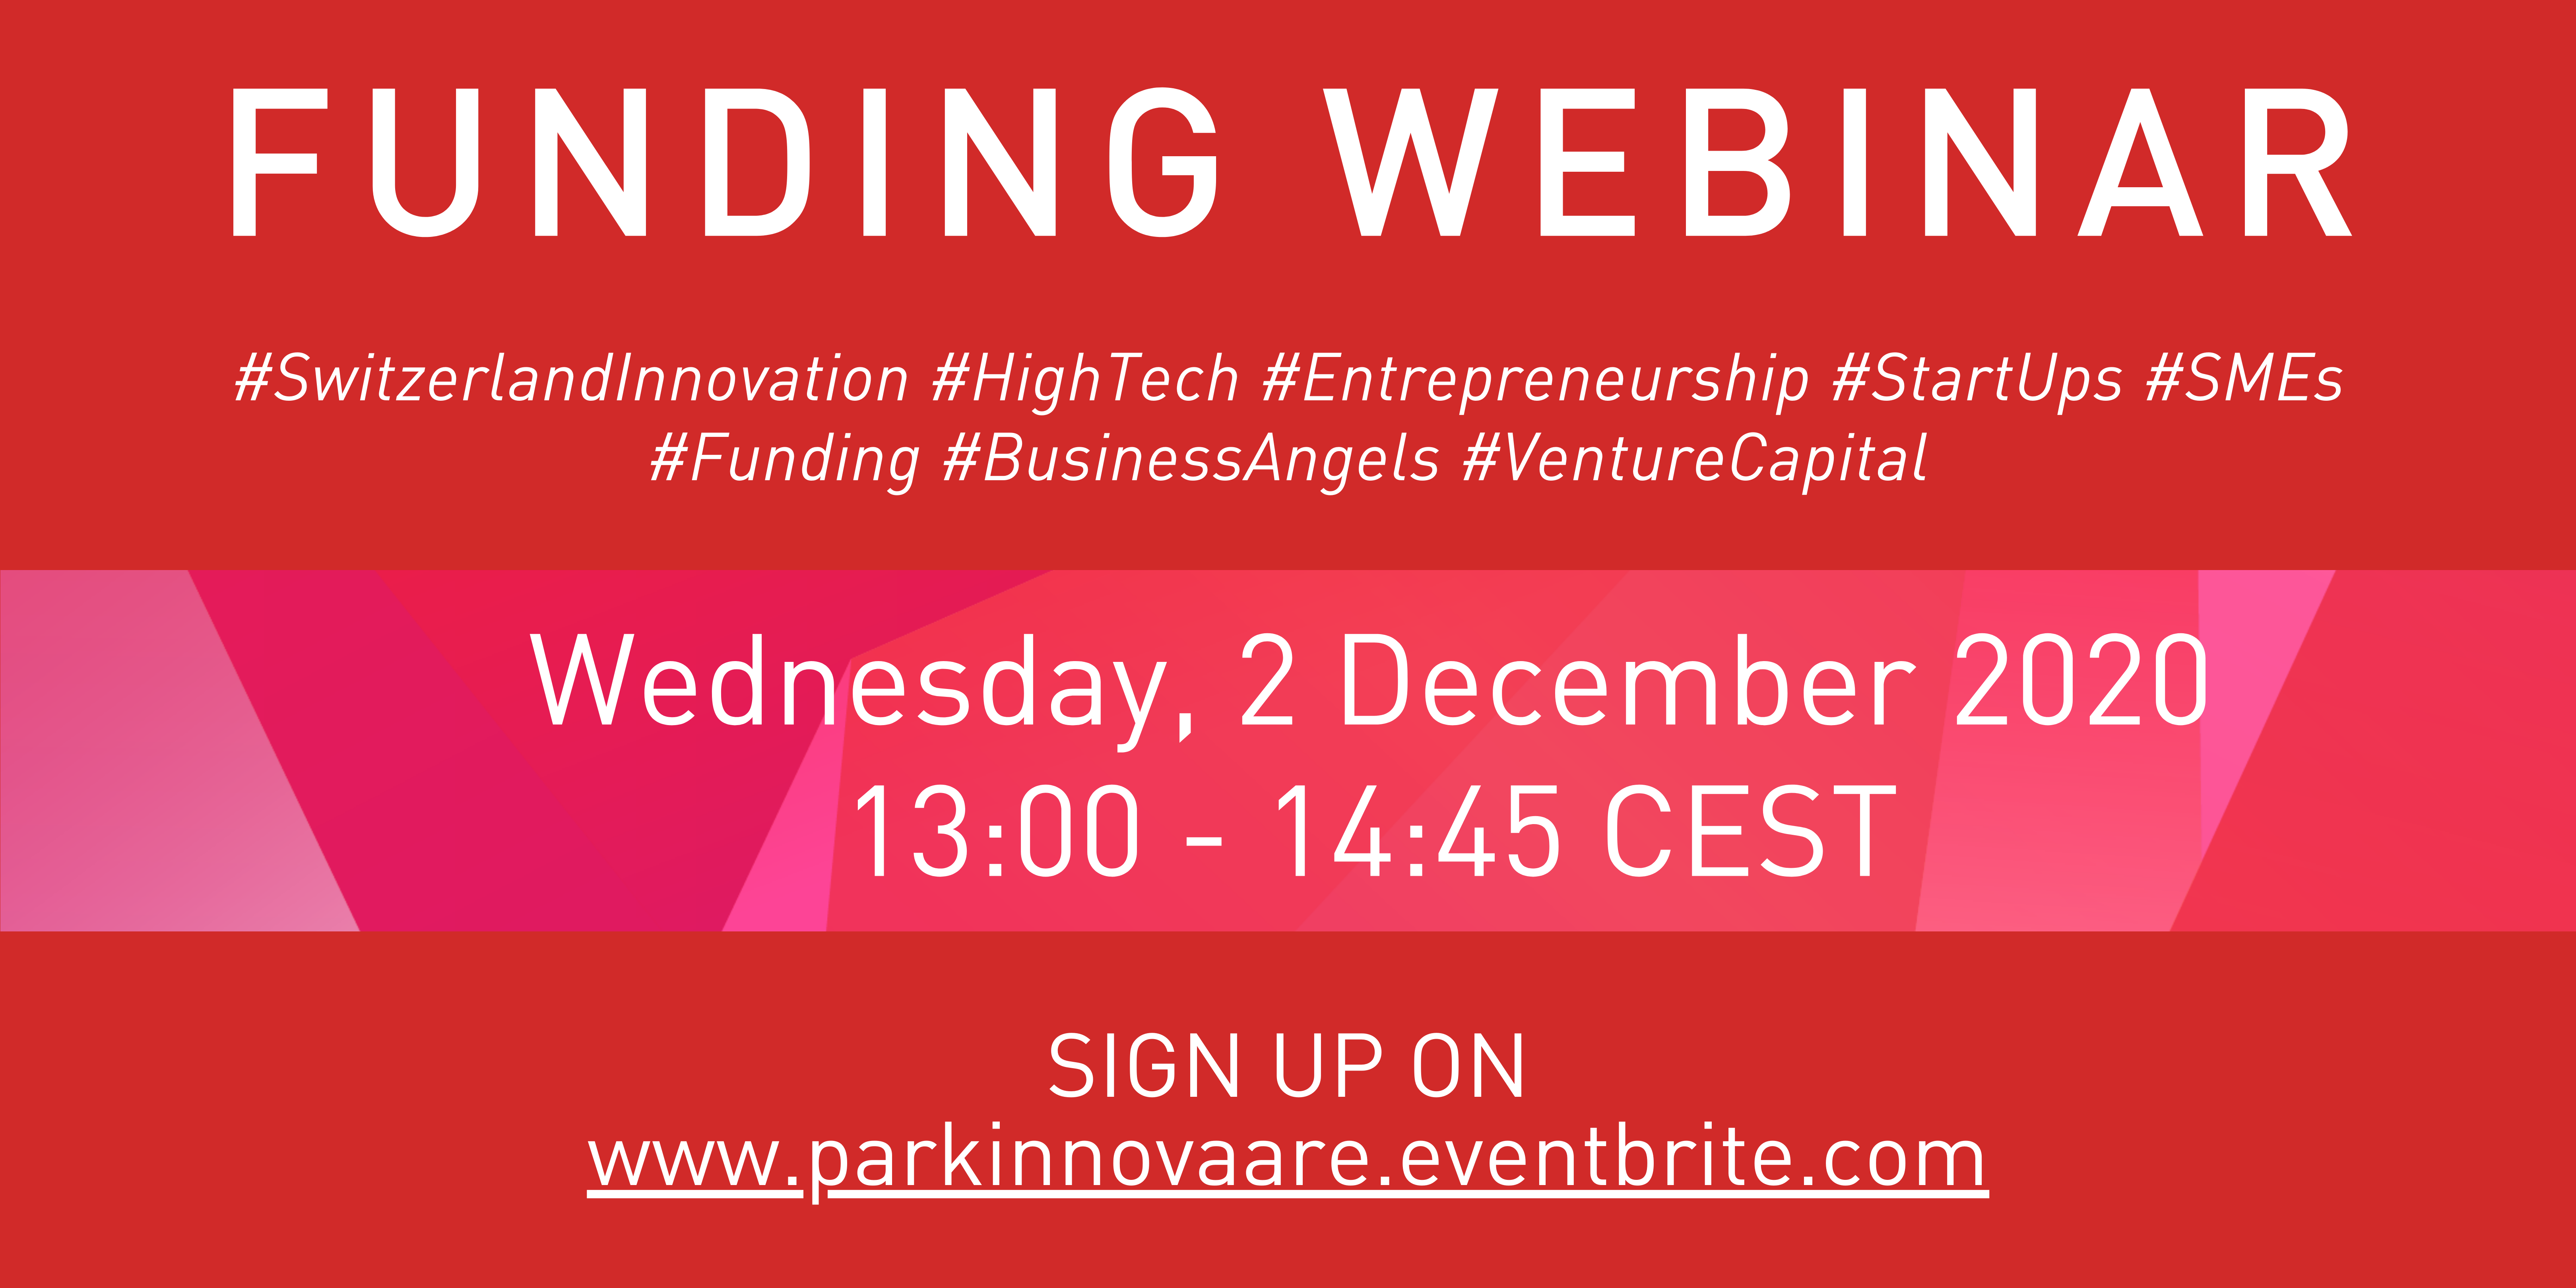 Funding Webinar : Wednesday 2 December 2020